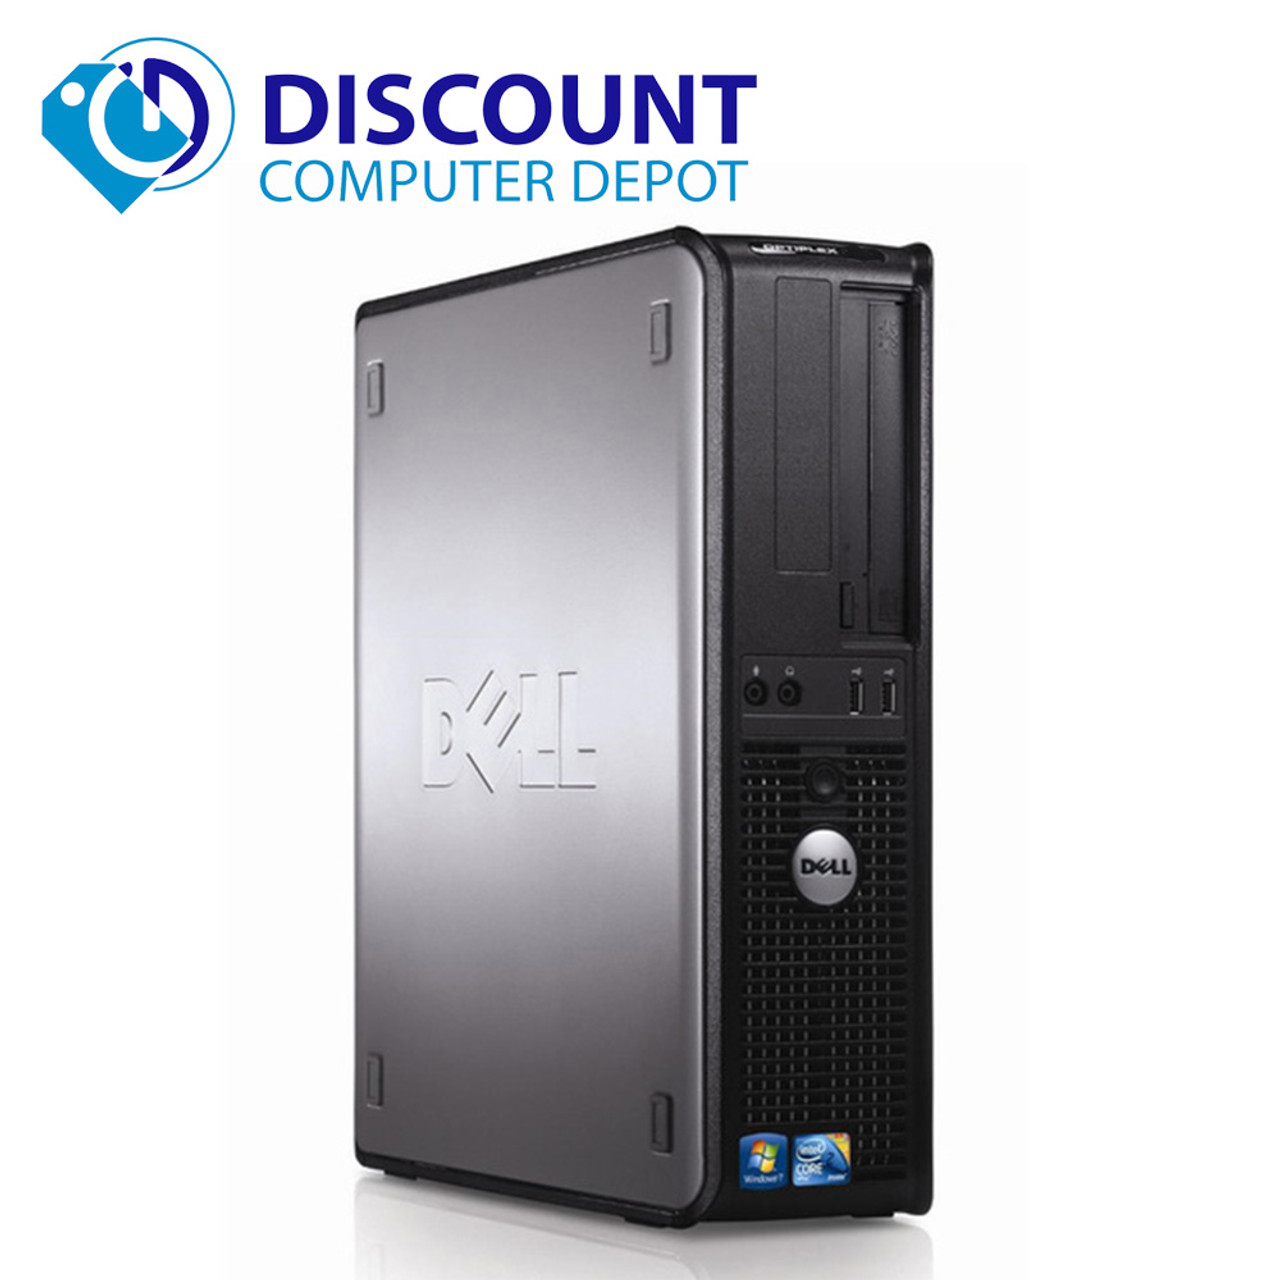 Fast Dell Optiplex Windows 10 Professional Desktop Computer PC Core 2 Duo  2 13GHz 4GB 160GB with Dual Out Video Card and WIFI